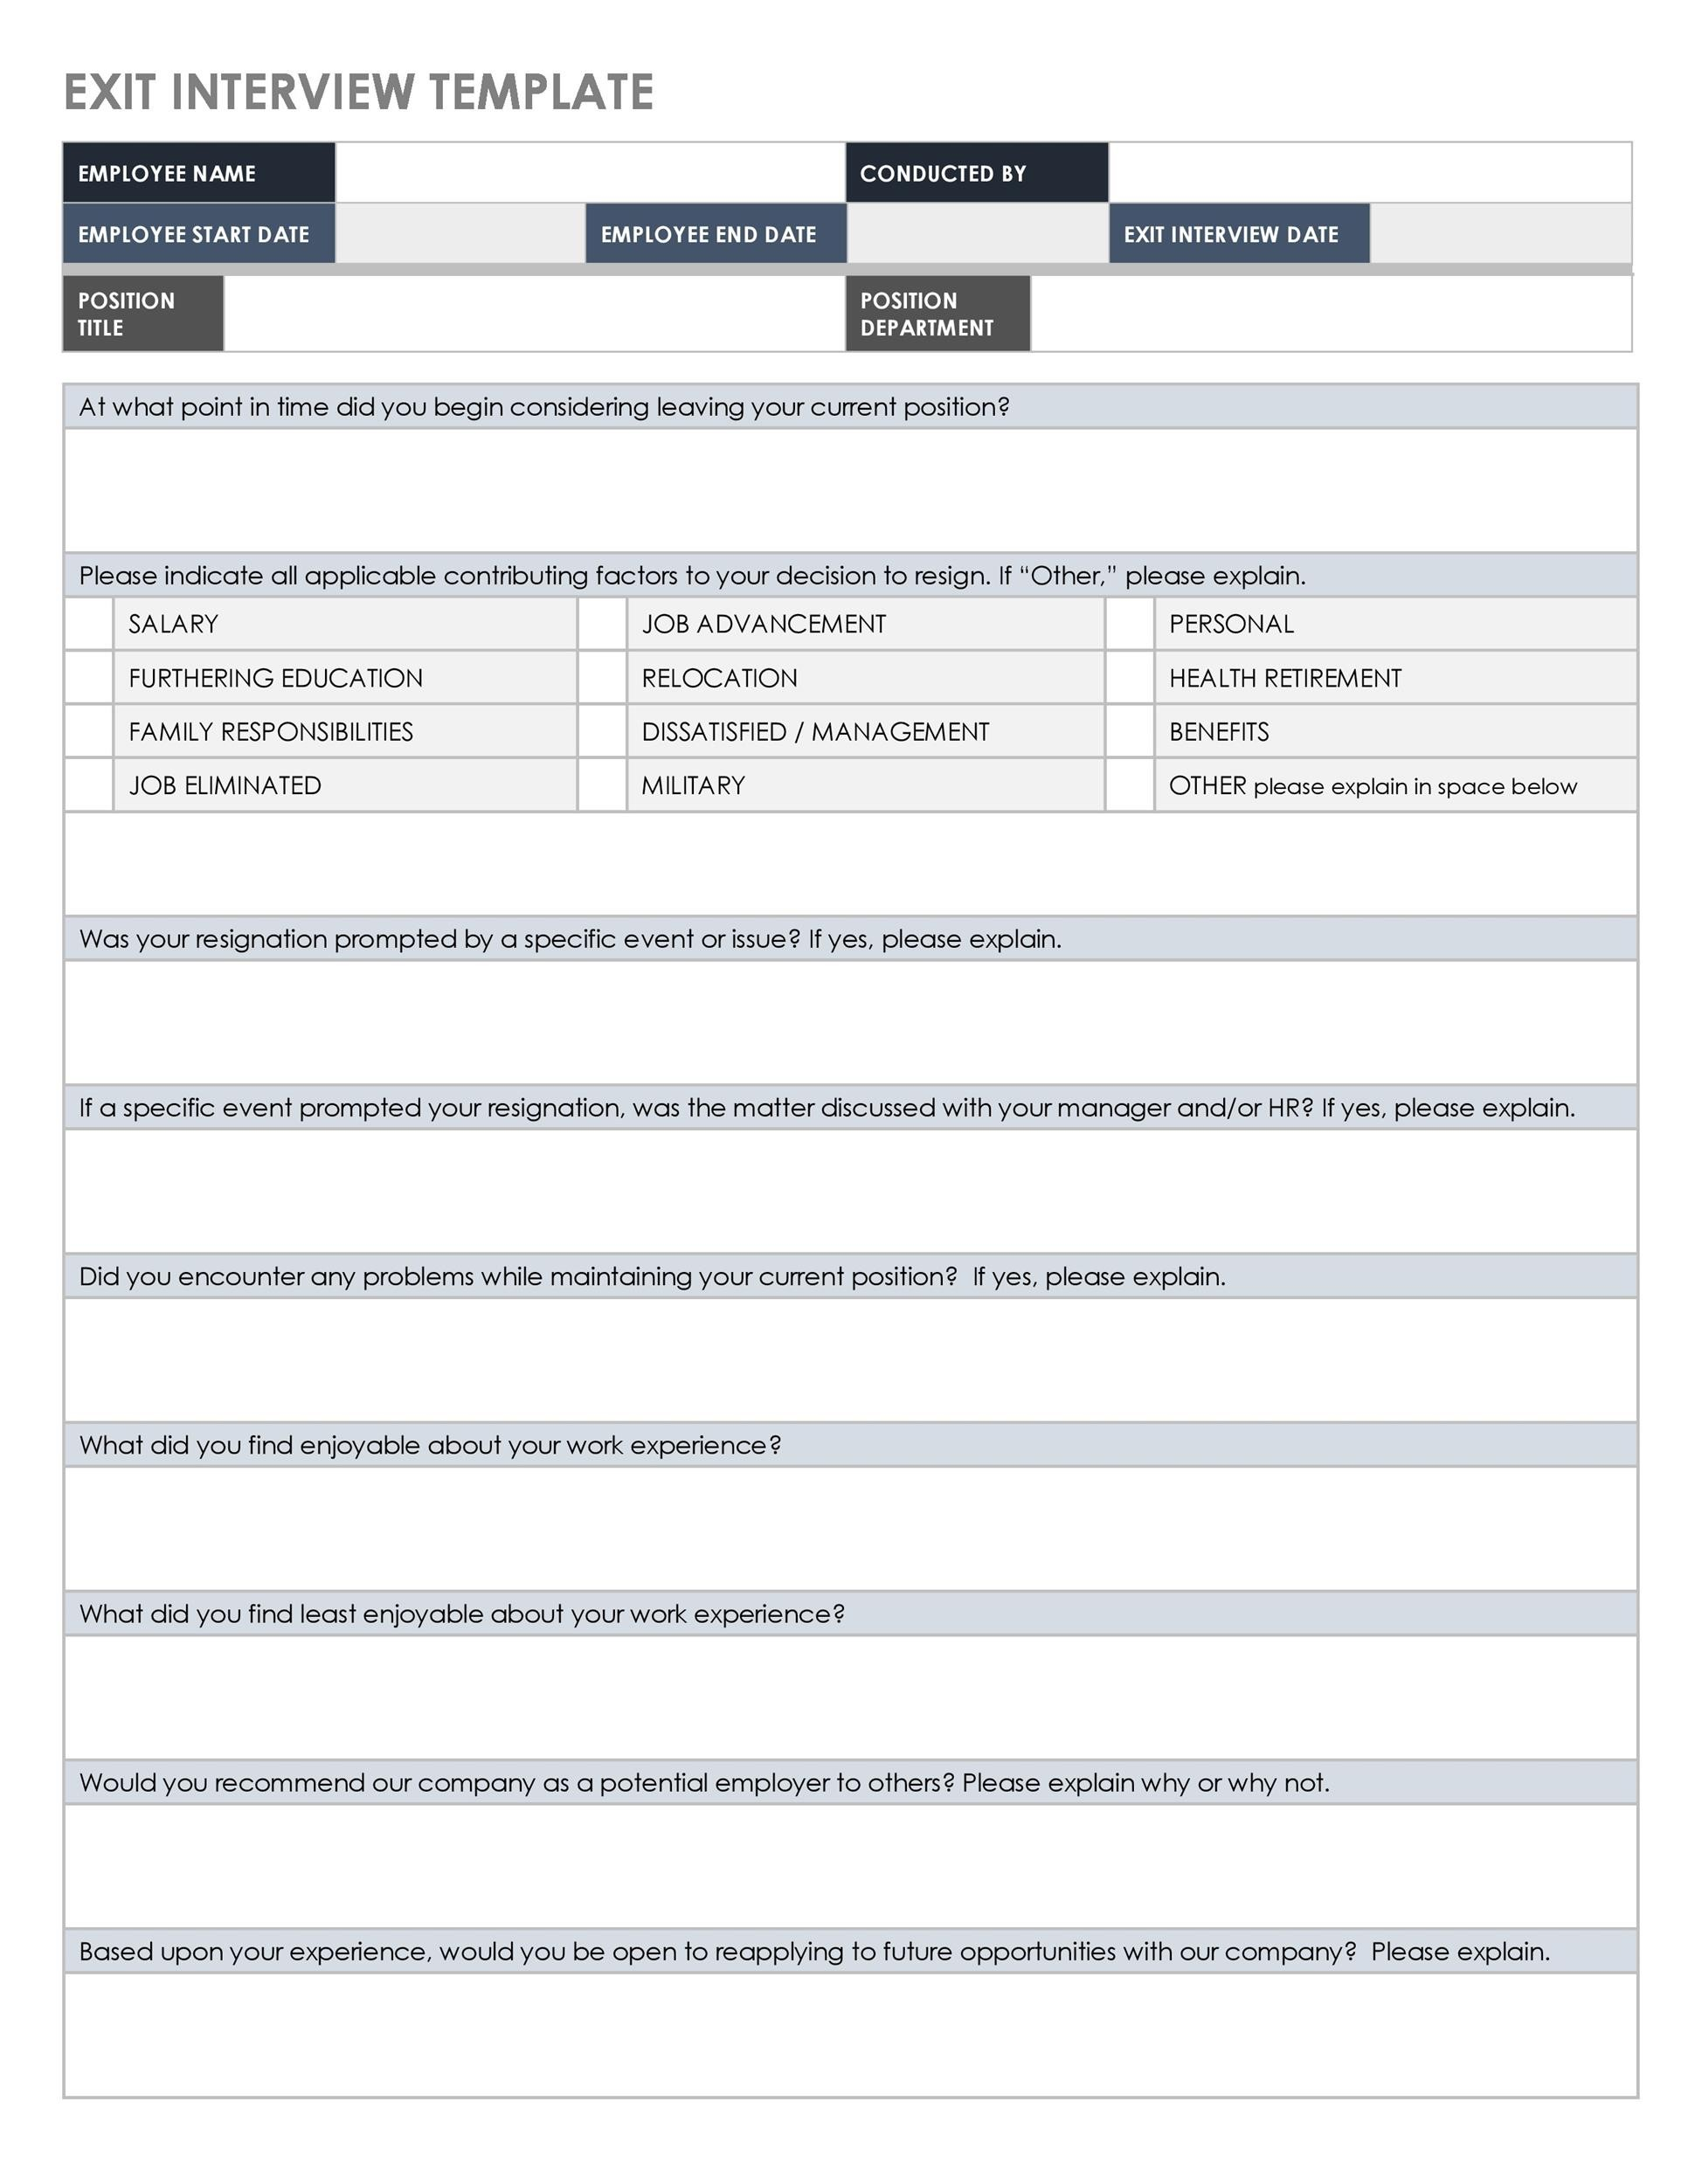 Free exit interview template 15